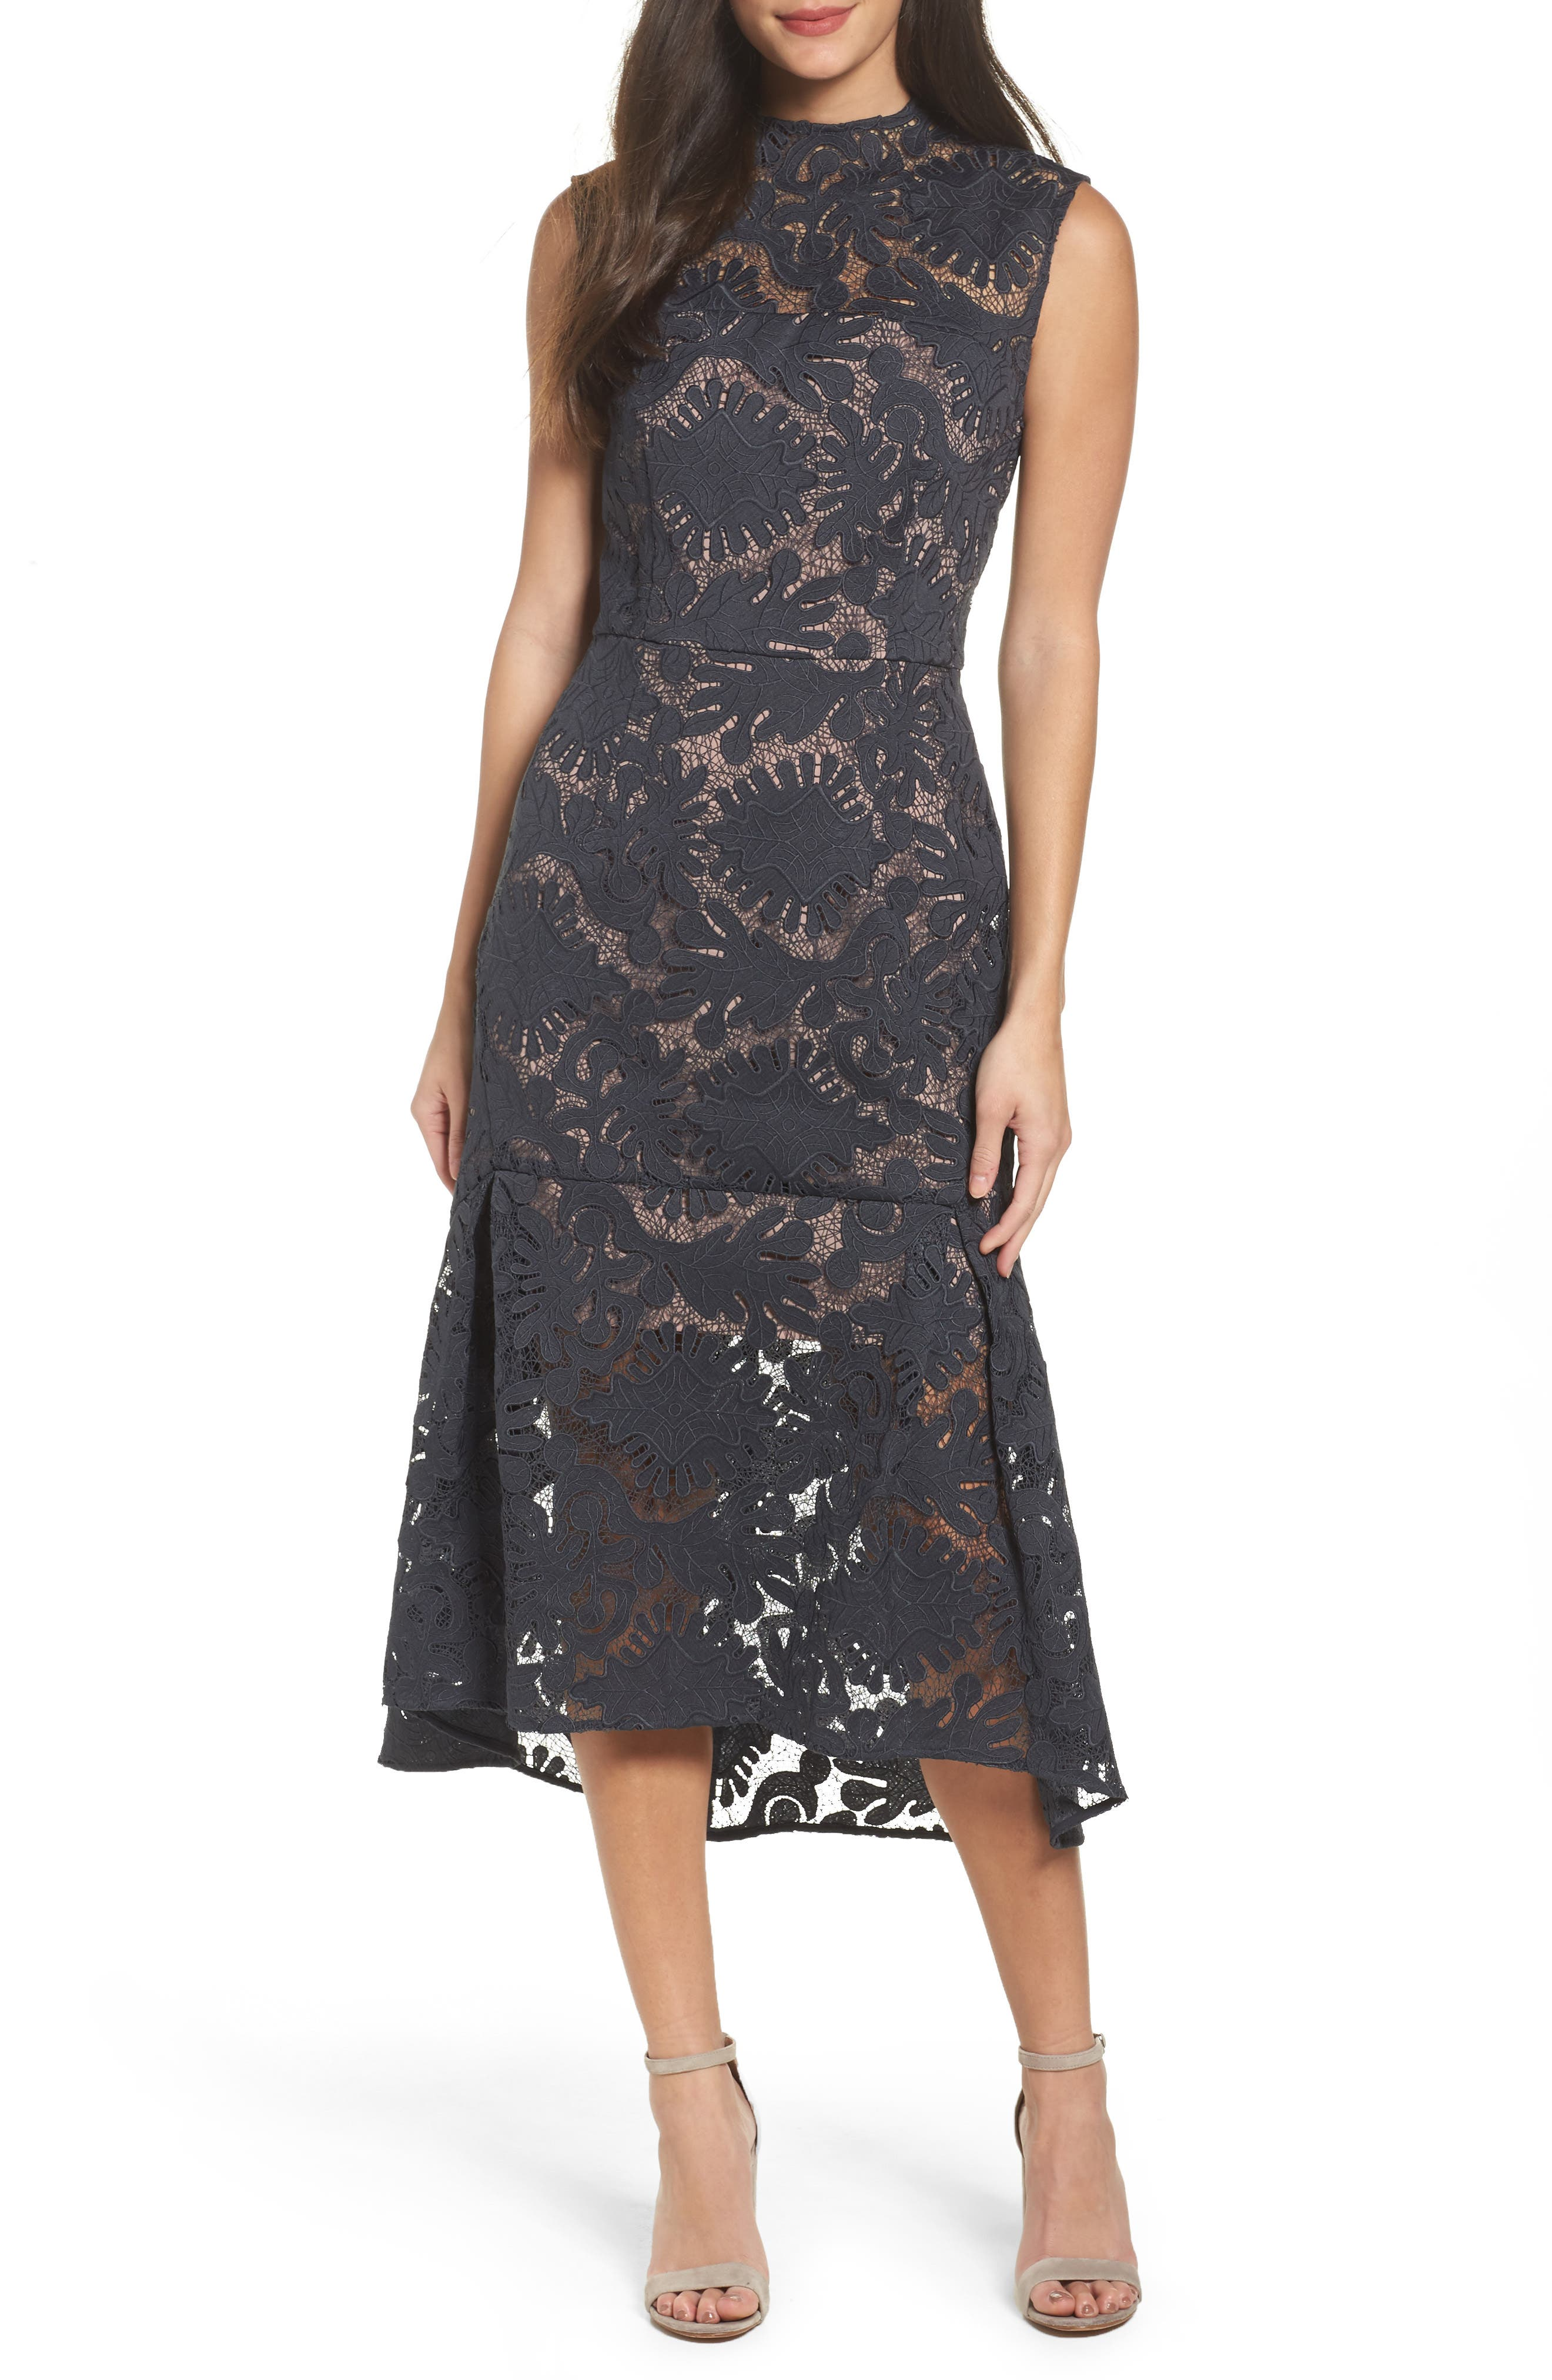 Alternate Image 1 Selected - Chelsea28 Lace Midi Dress